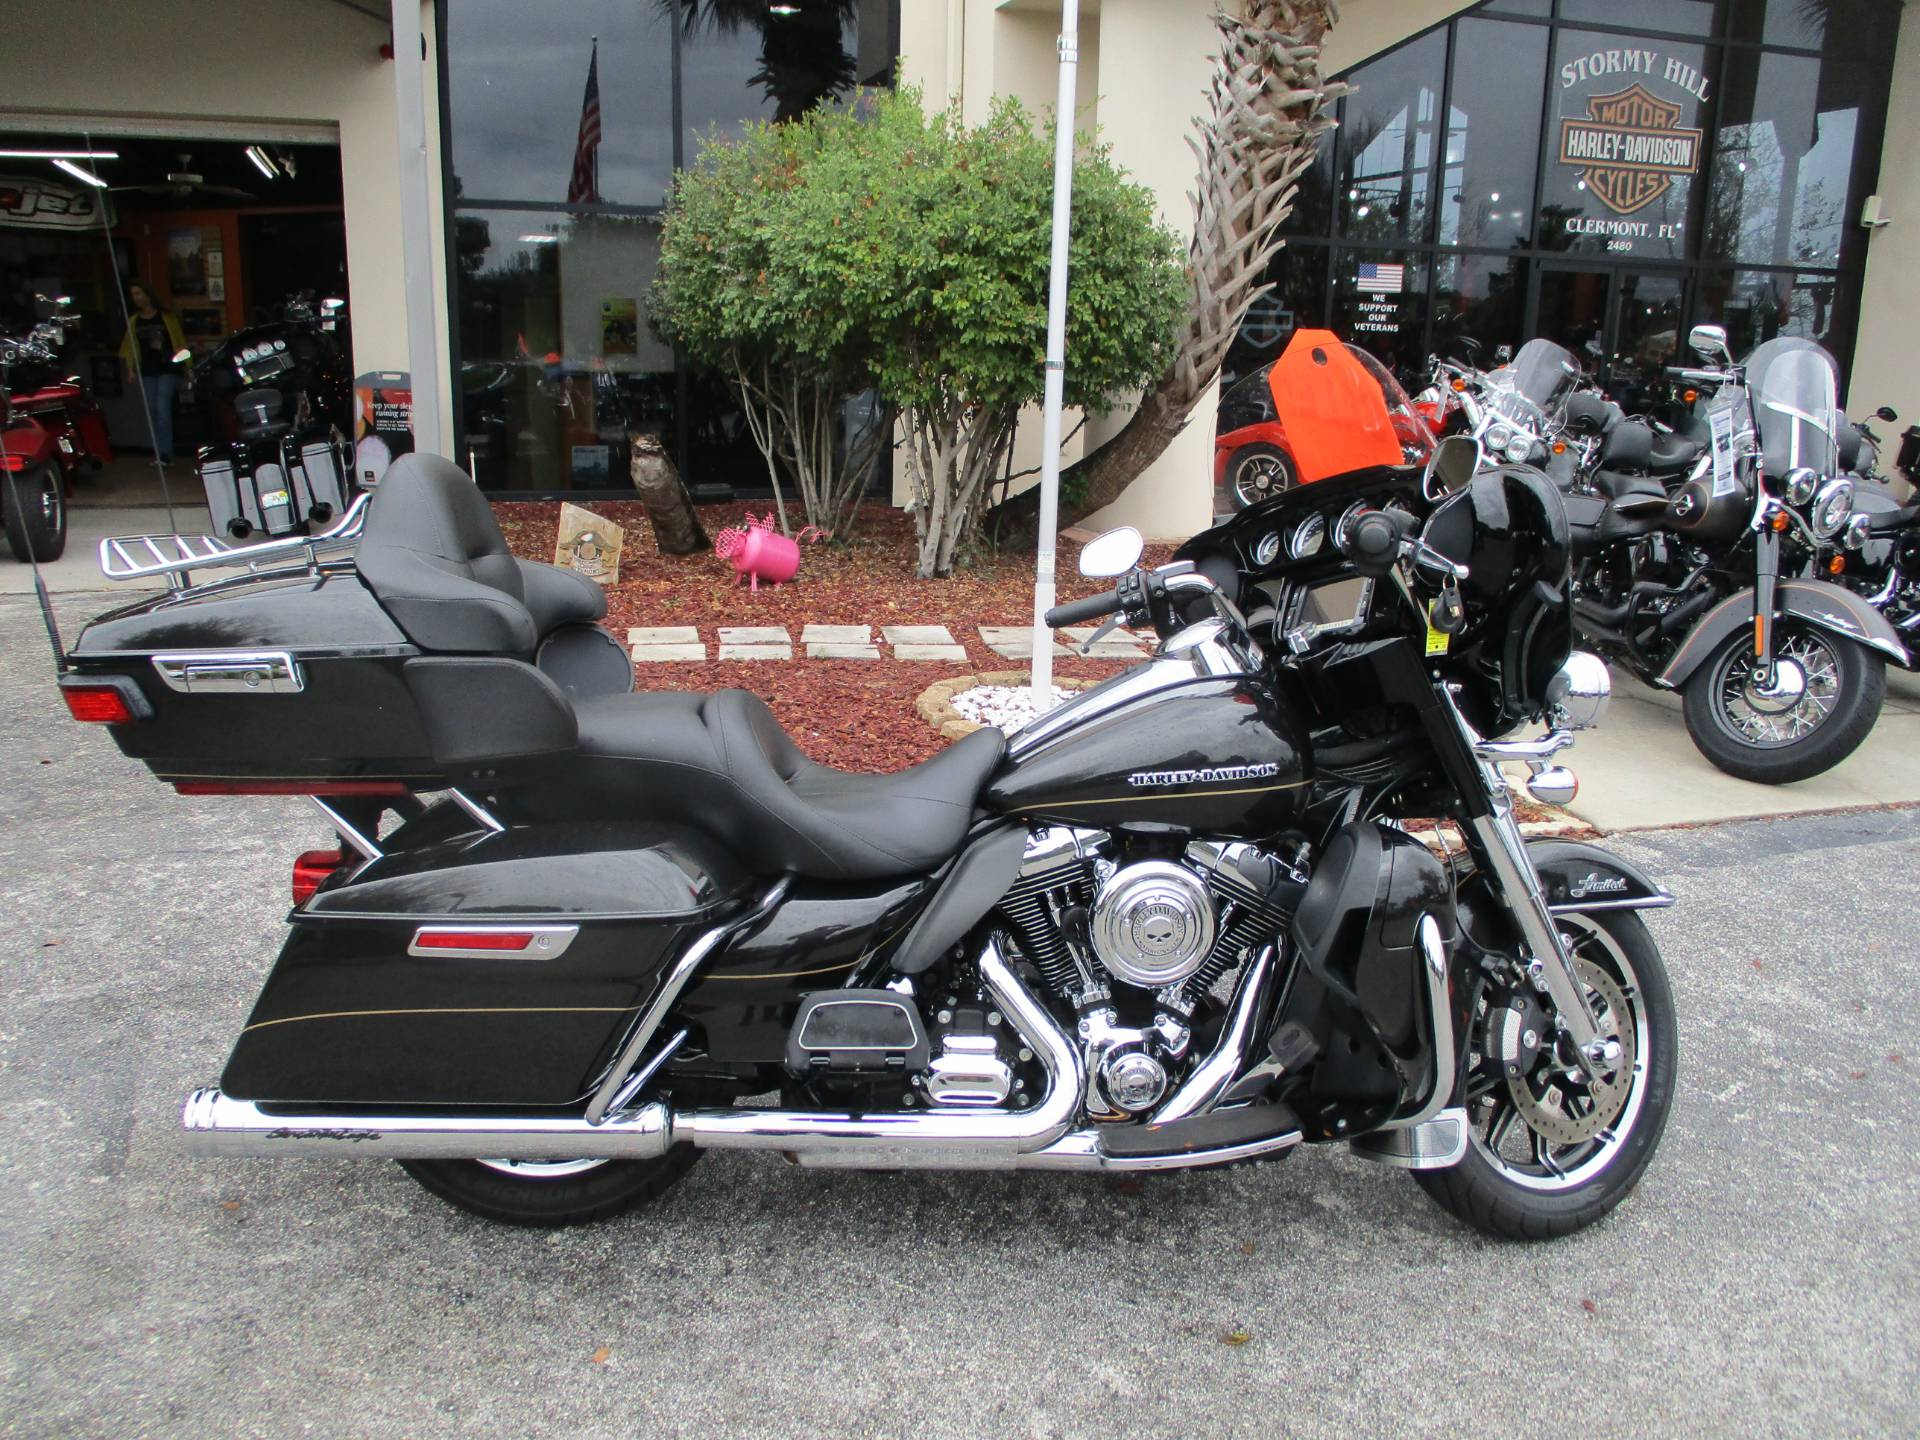 2016 Harley-Davidson Ultra Limited in Clermont, Florida - Photo 1